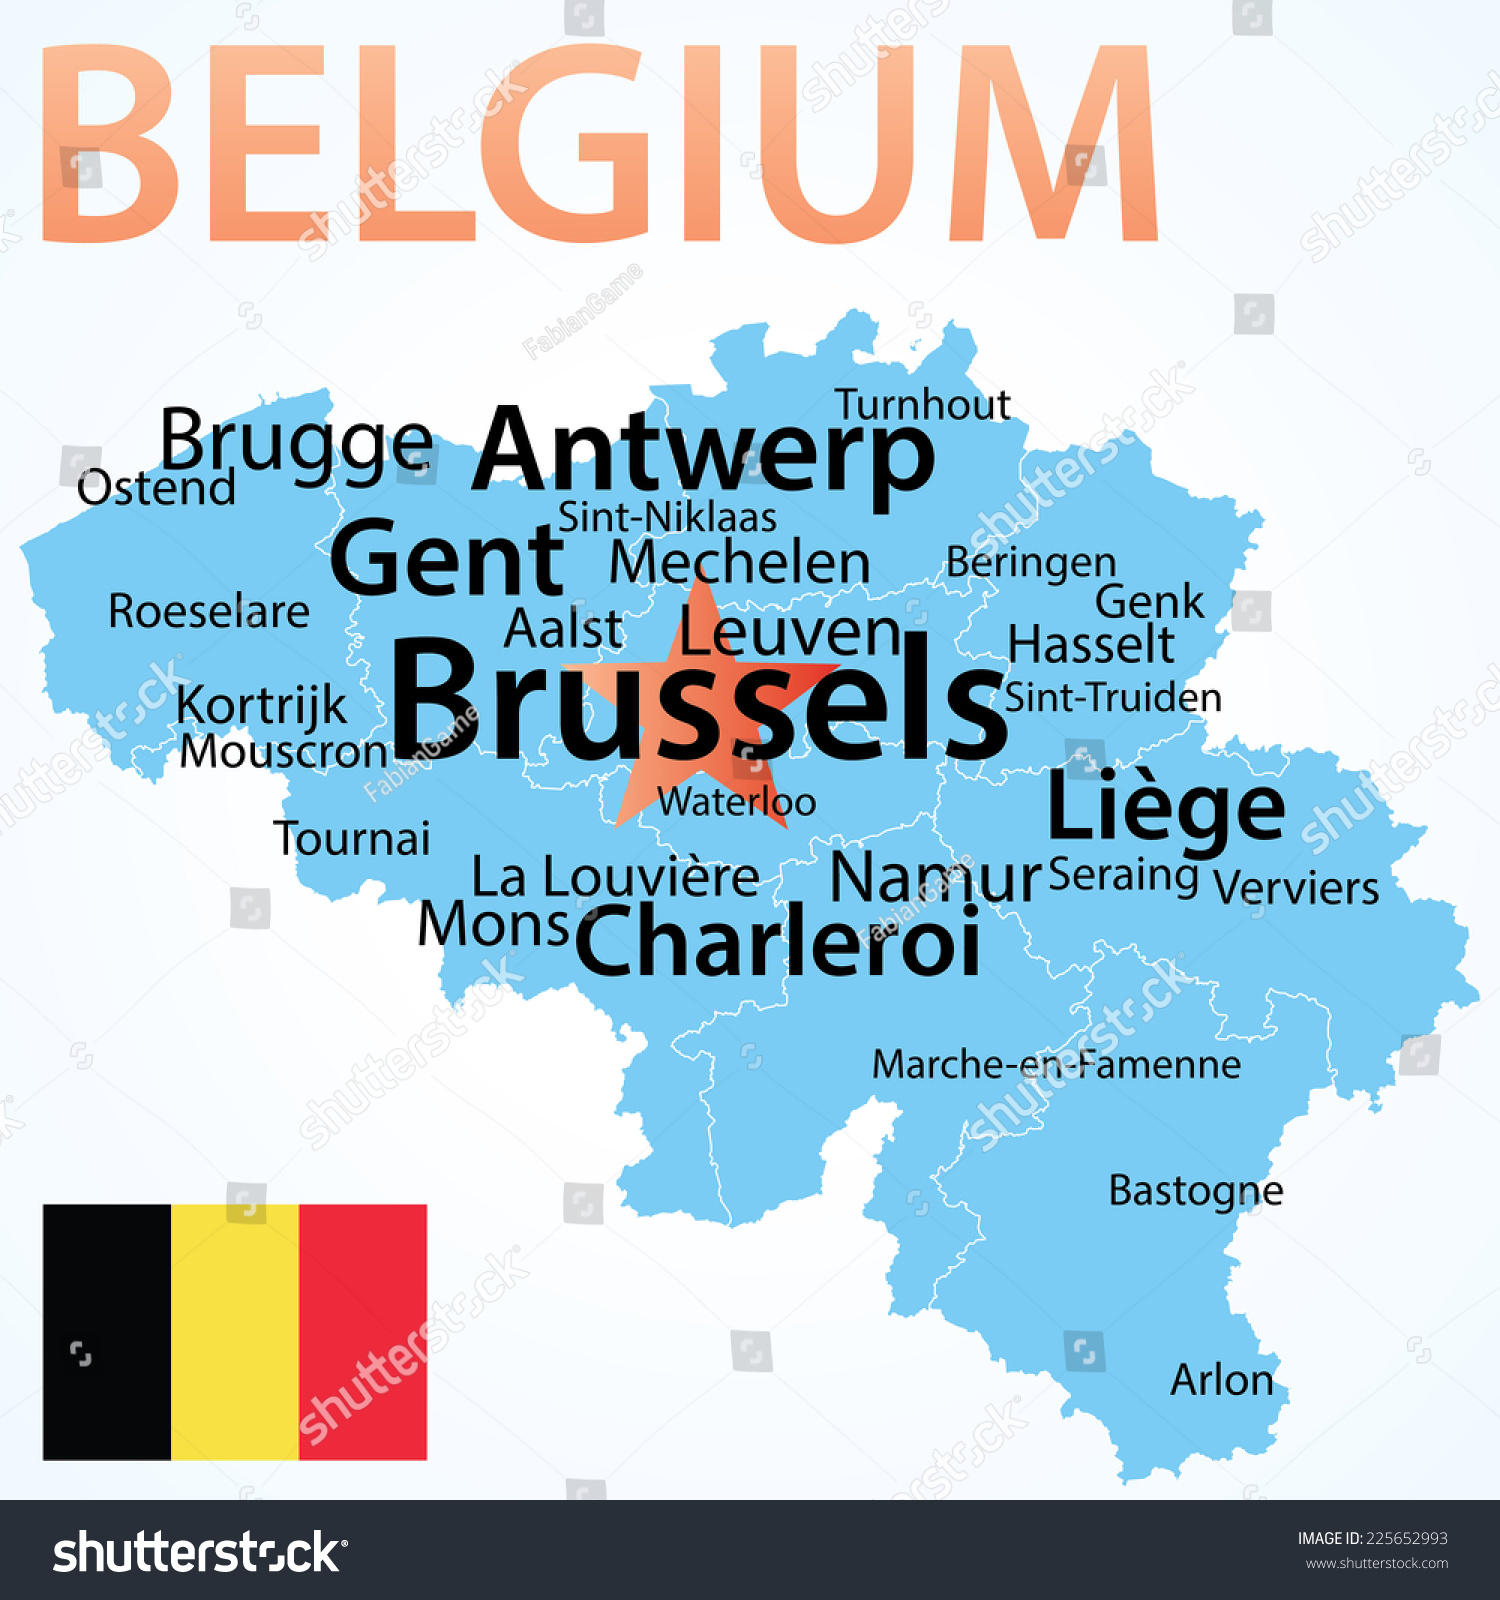 Belgium Map Largest Cities Carefully Scaled Vector 225652993 – Map of Belgium with Cities